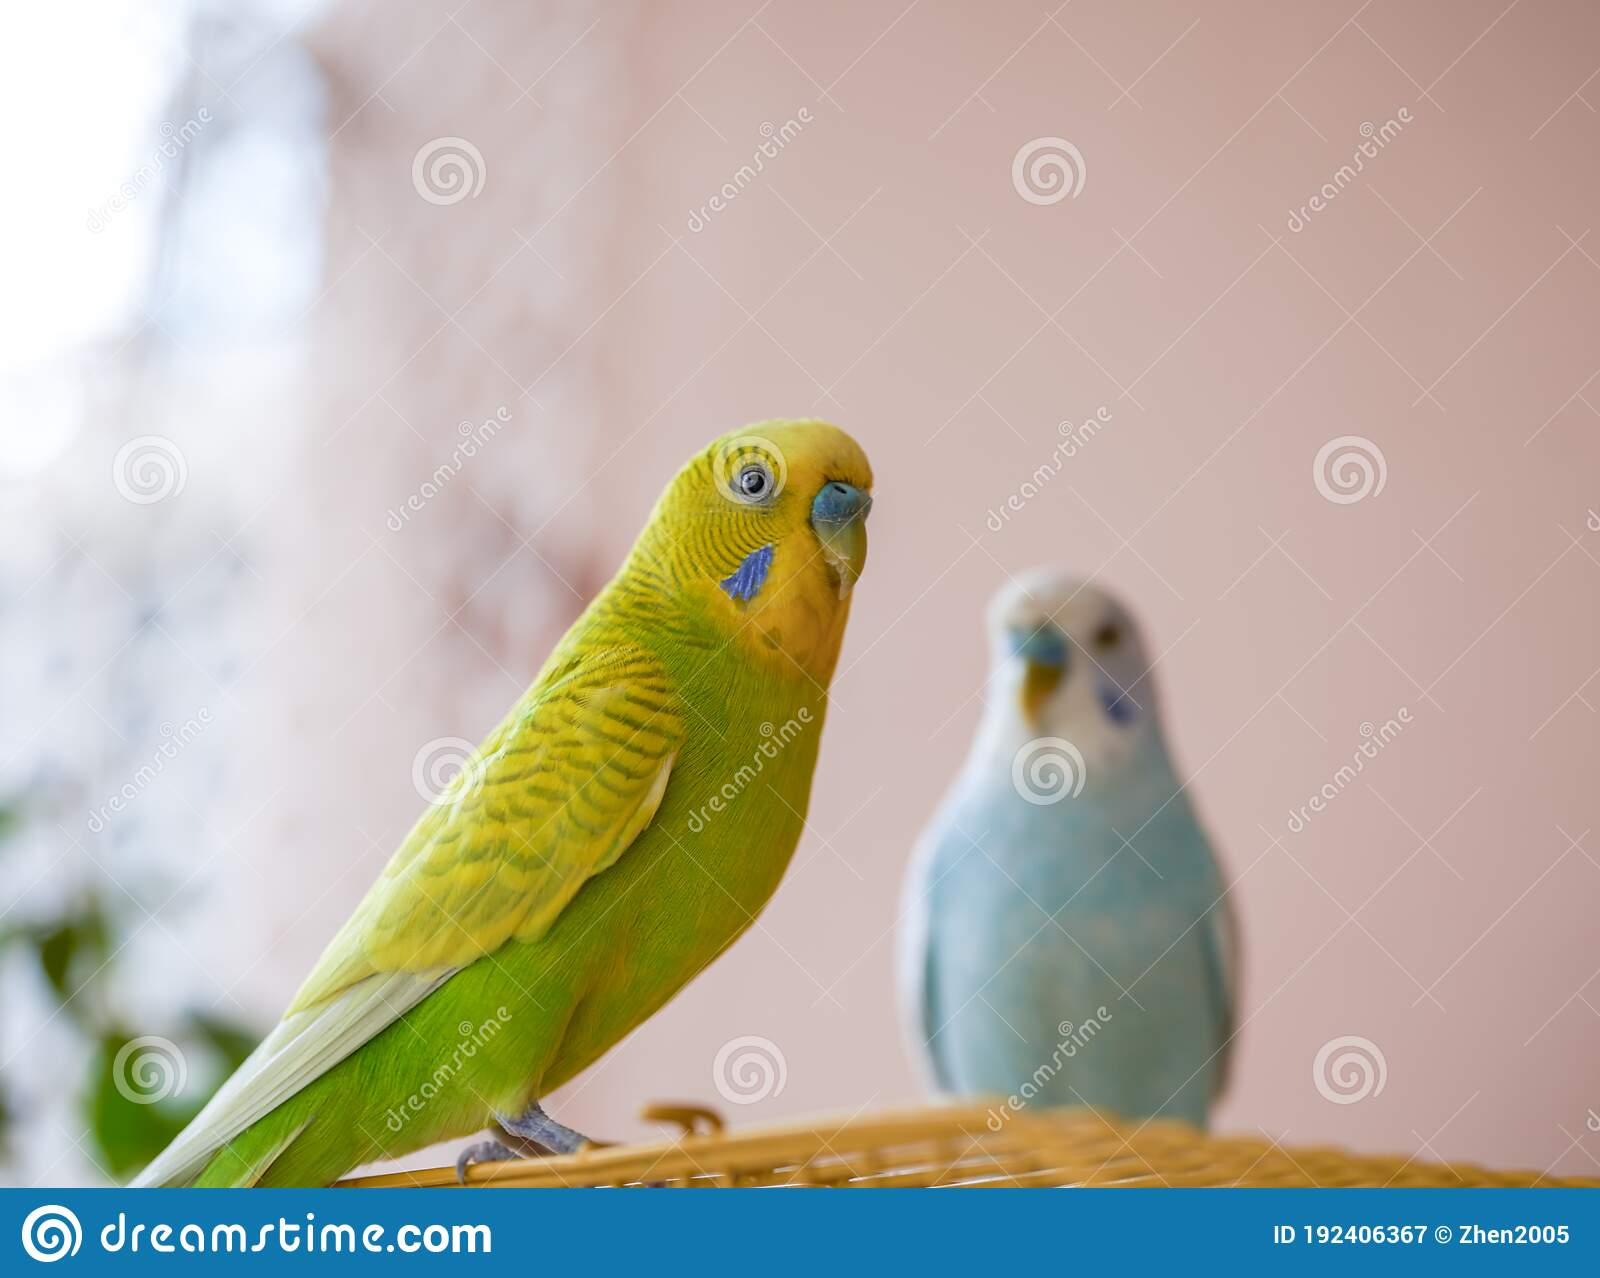 Two Cute Pet Parrots Yellow Green Parrot And Blue White Parrot Stock Image Image Of Branch Portrait 192406367